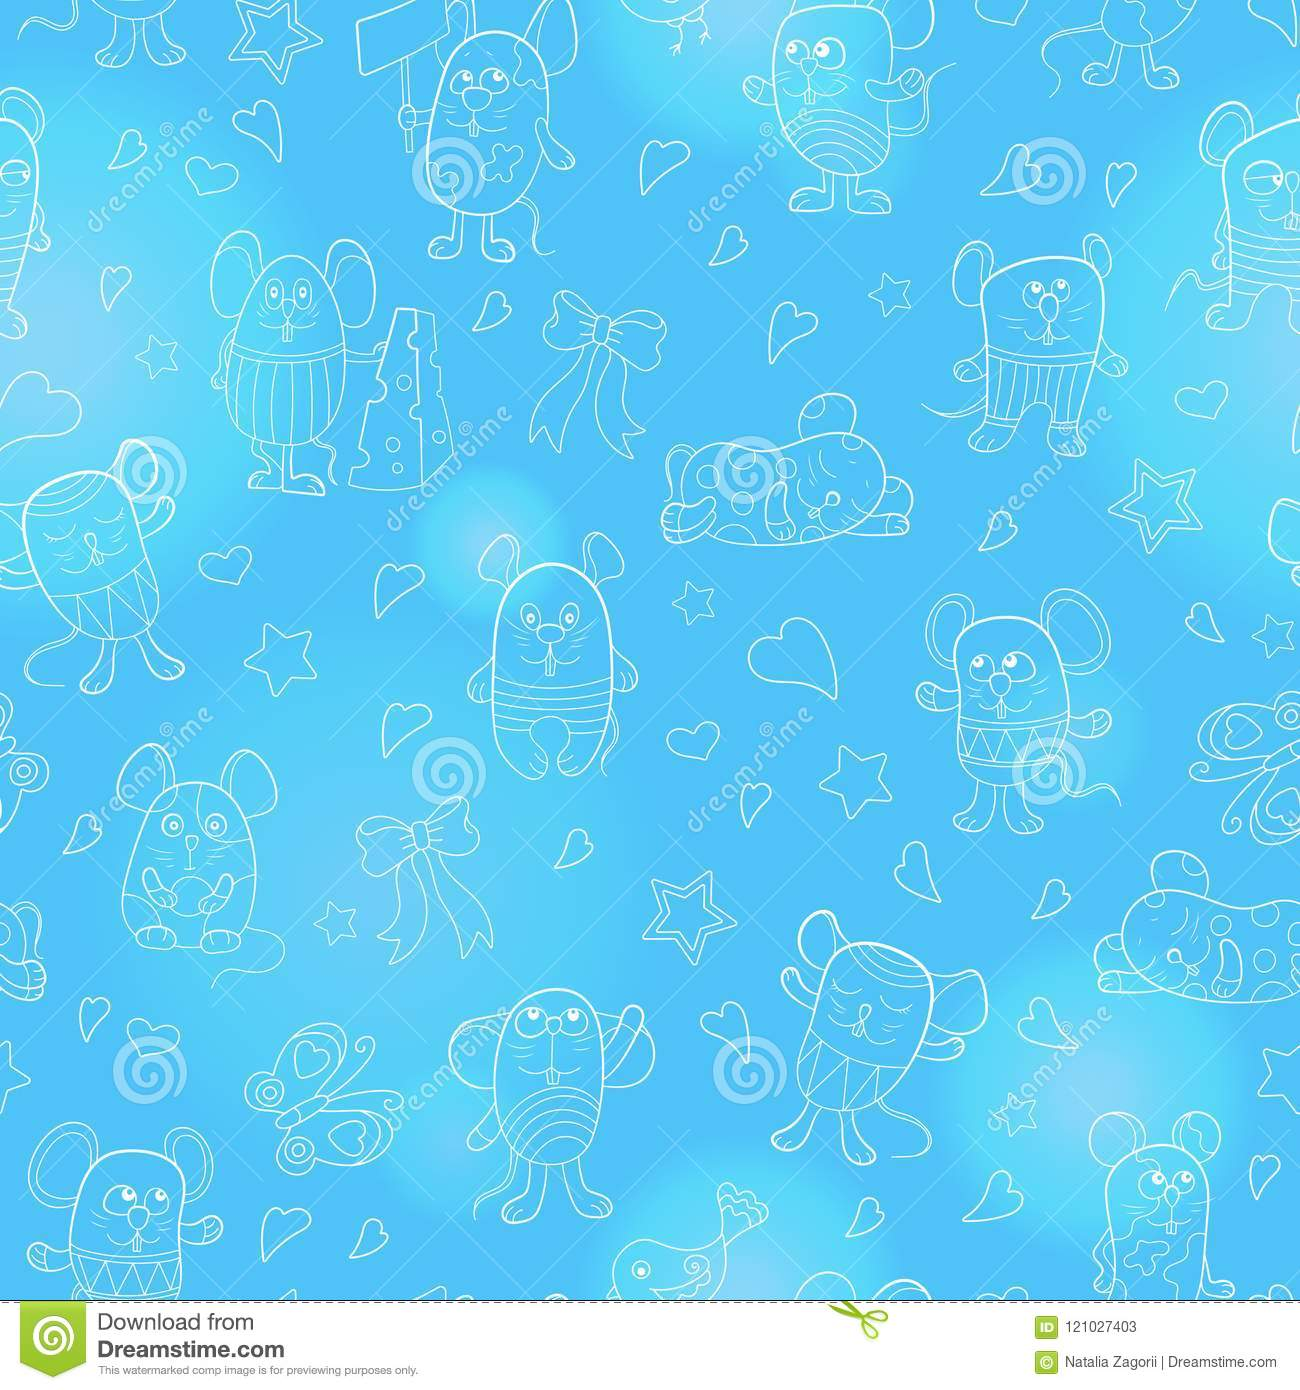 Seamless illustration with funny cartoon contour mouses ,the white outline on a blue background